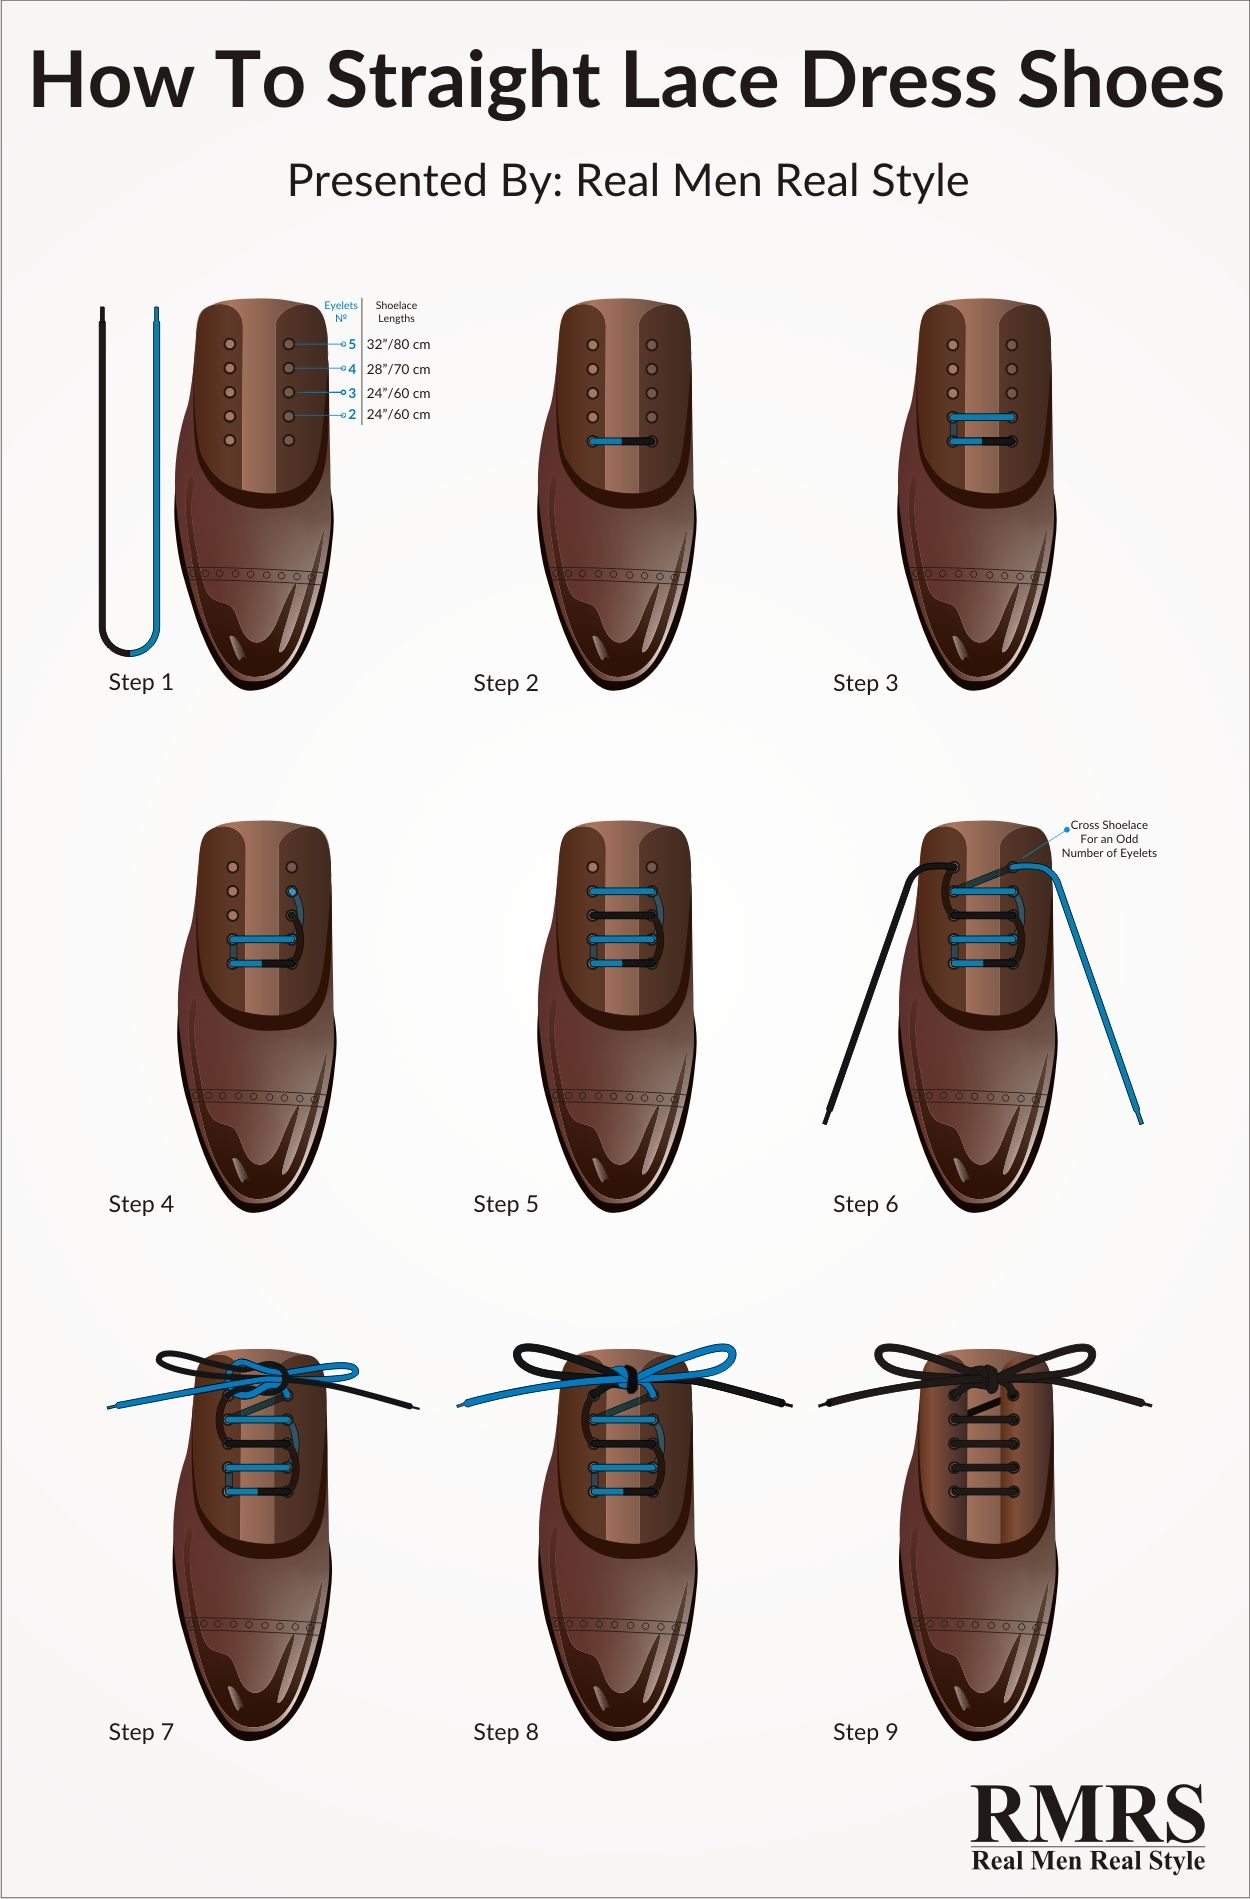 How To Straight Lace Your Dress Shoes - Infographic | Style, Dress ...